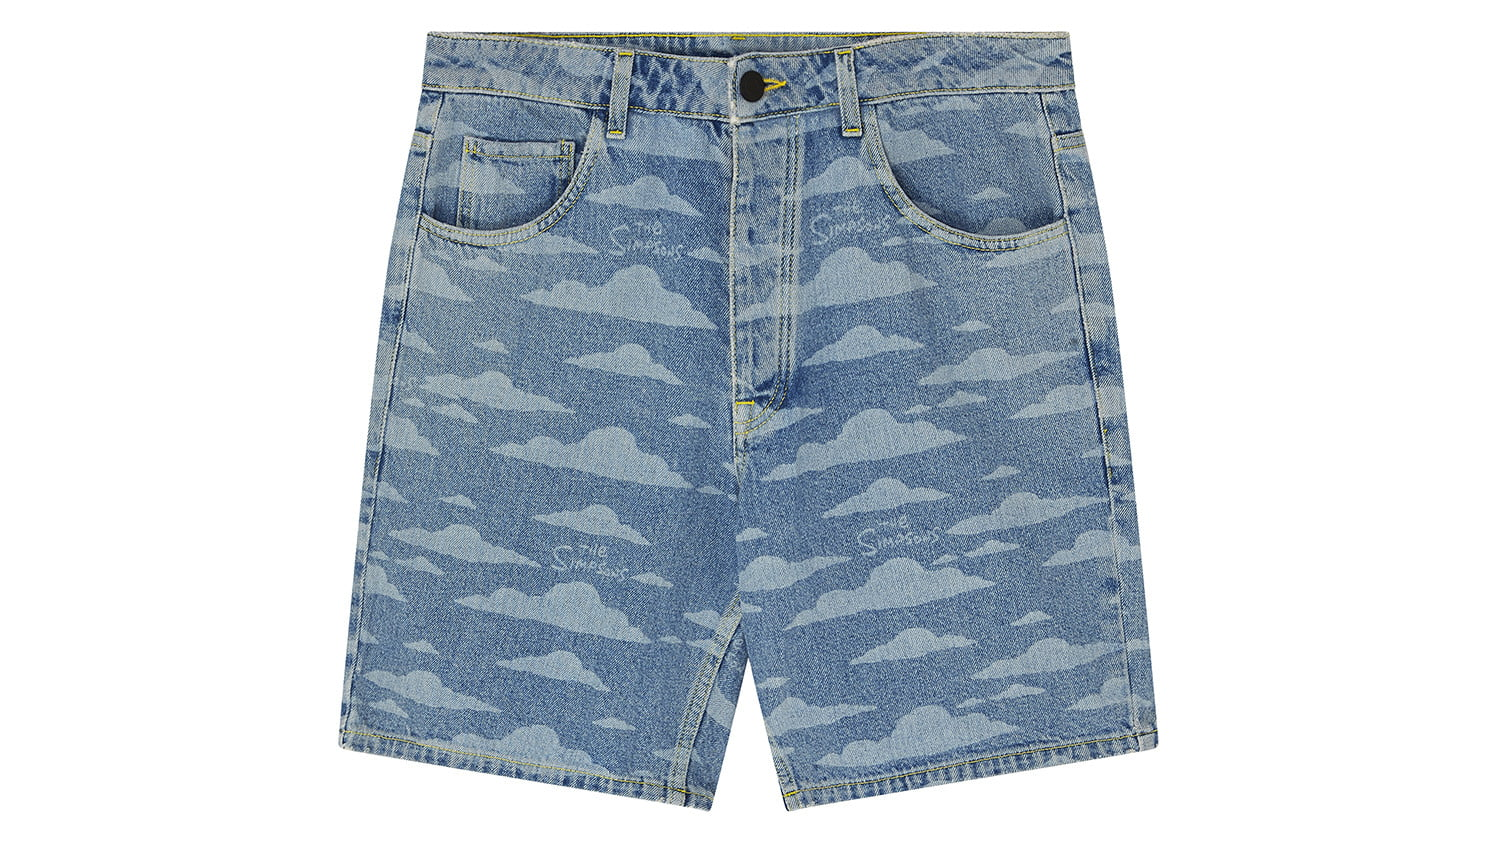 asos x the simpsons collection bluecloudshorts